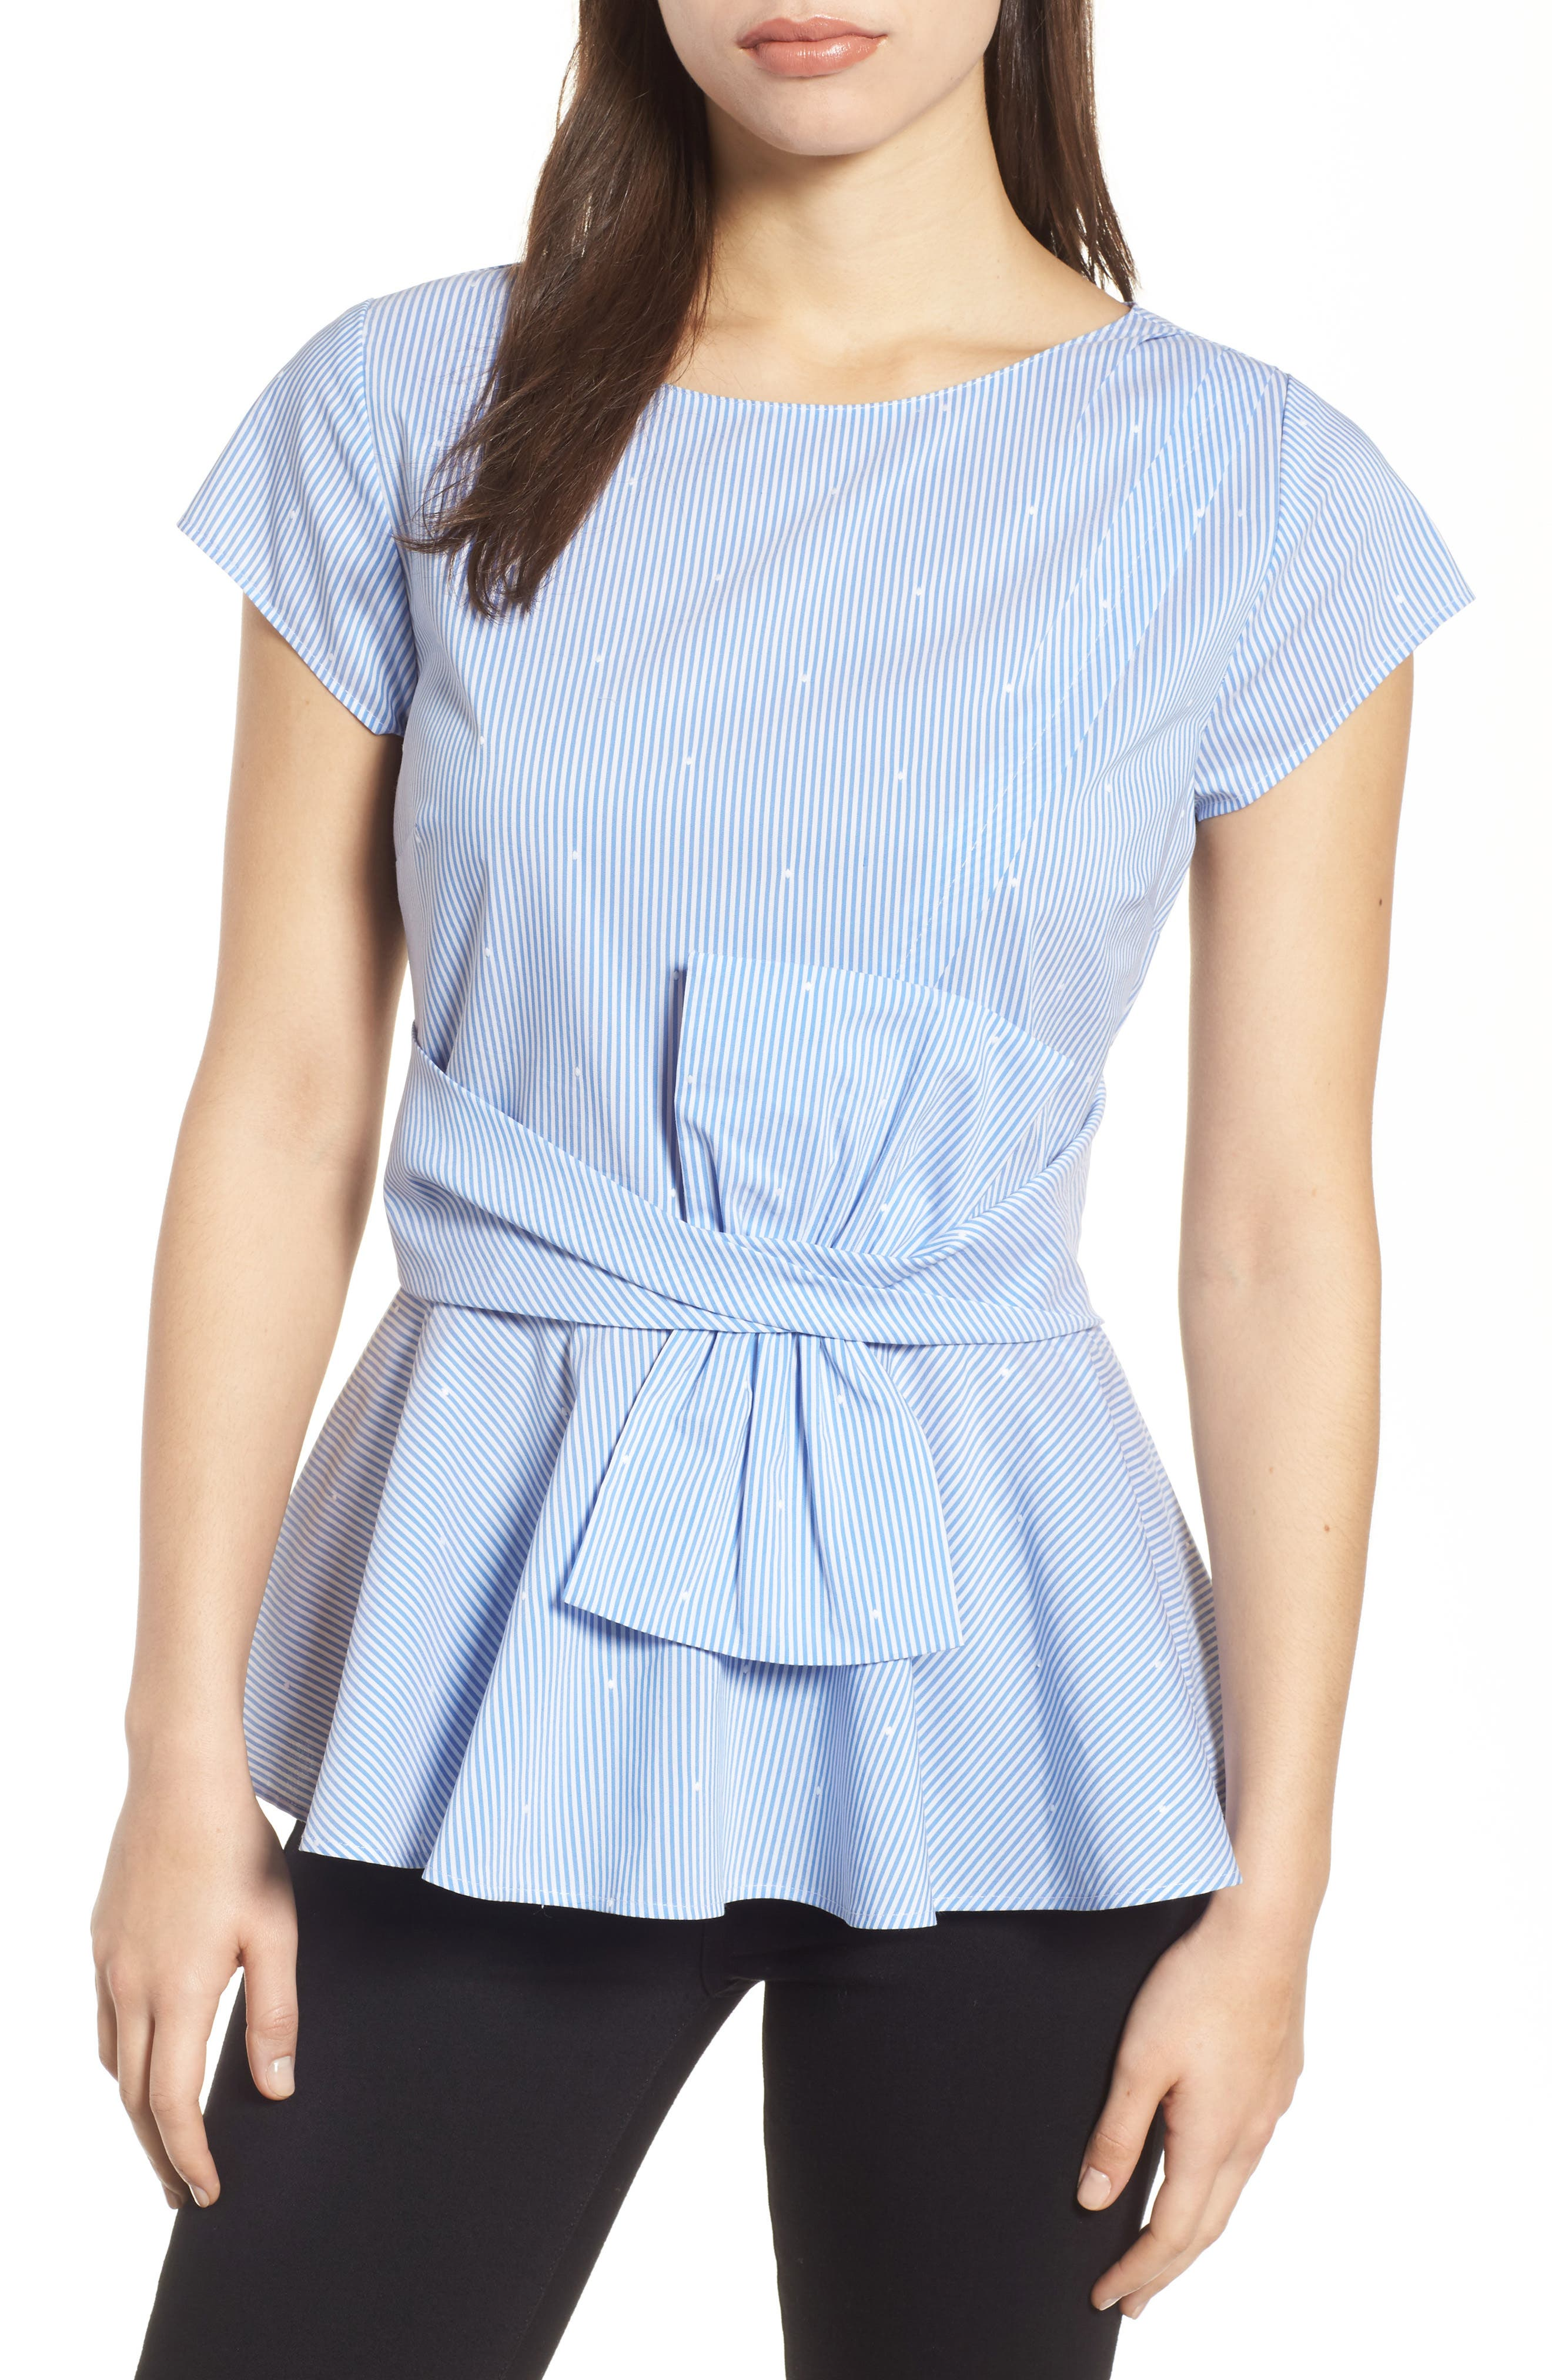 Bow Detail Peplum Top,                             Main thumbnail 1, color,                             Blue- White Stripe Dot